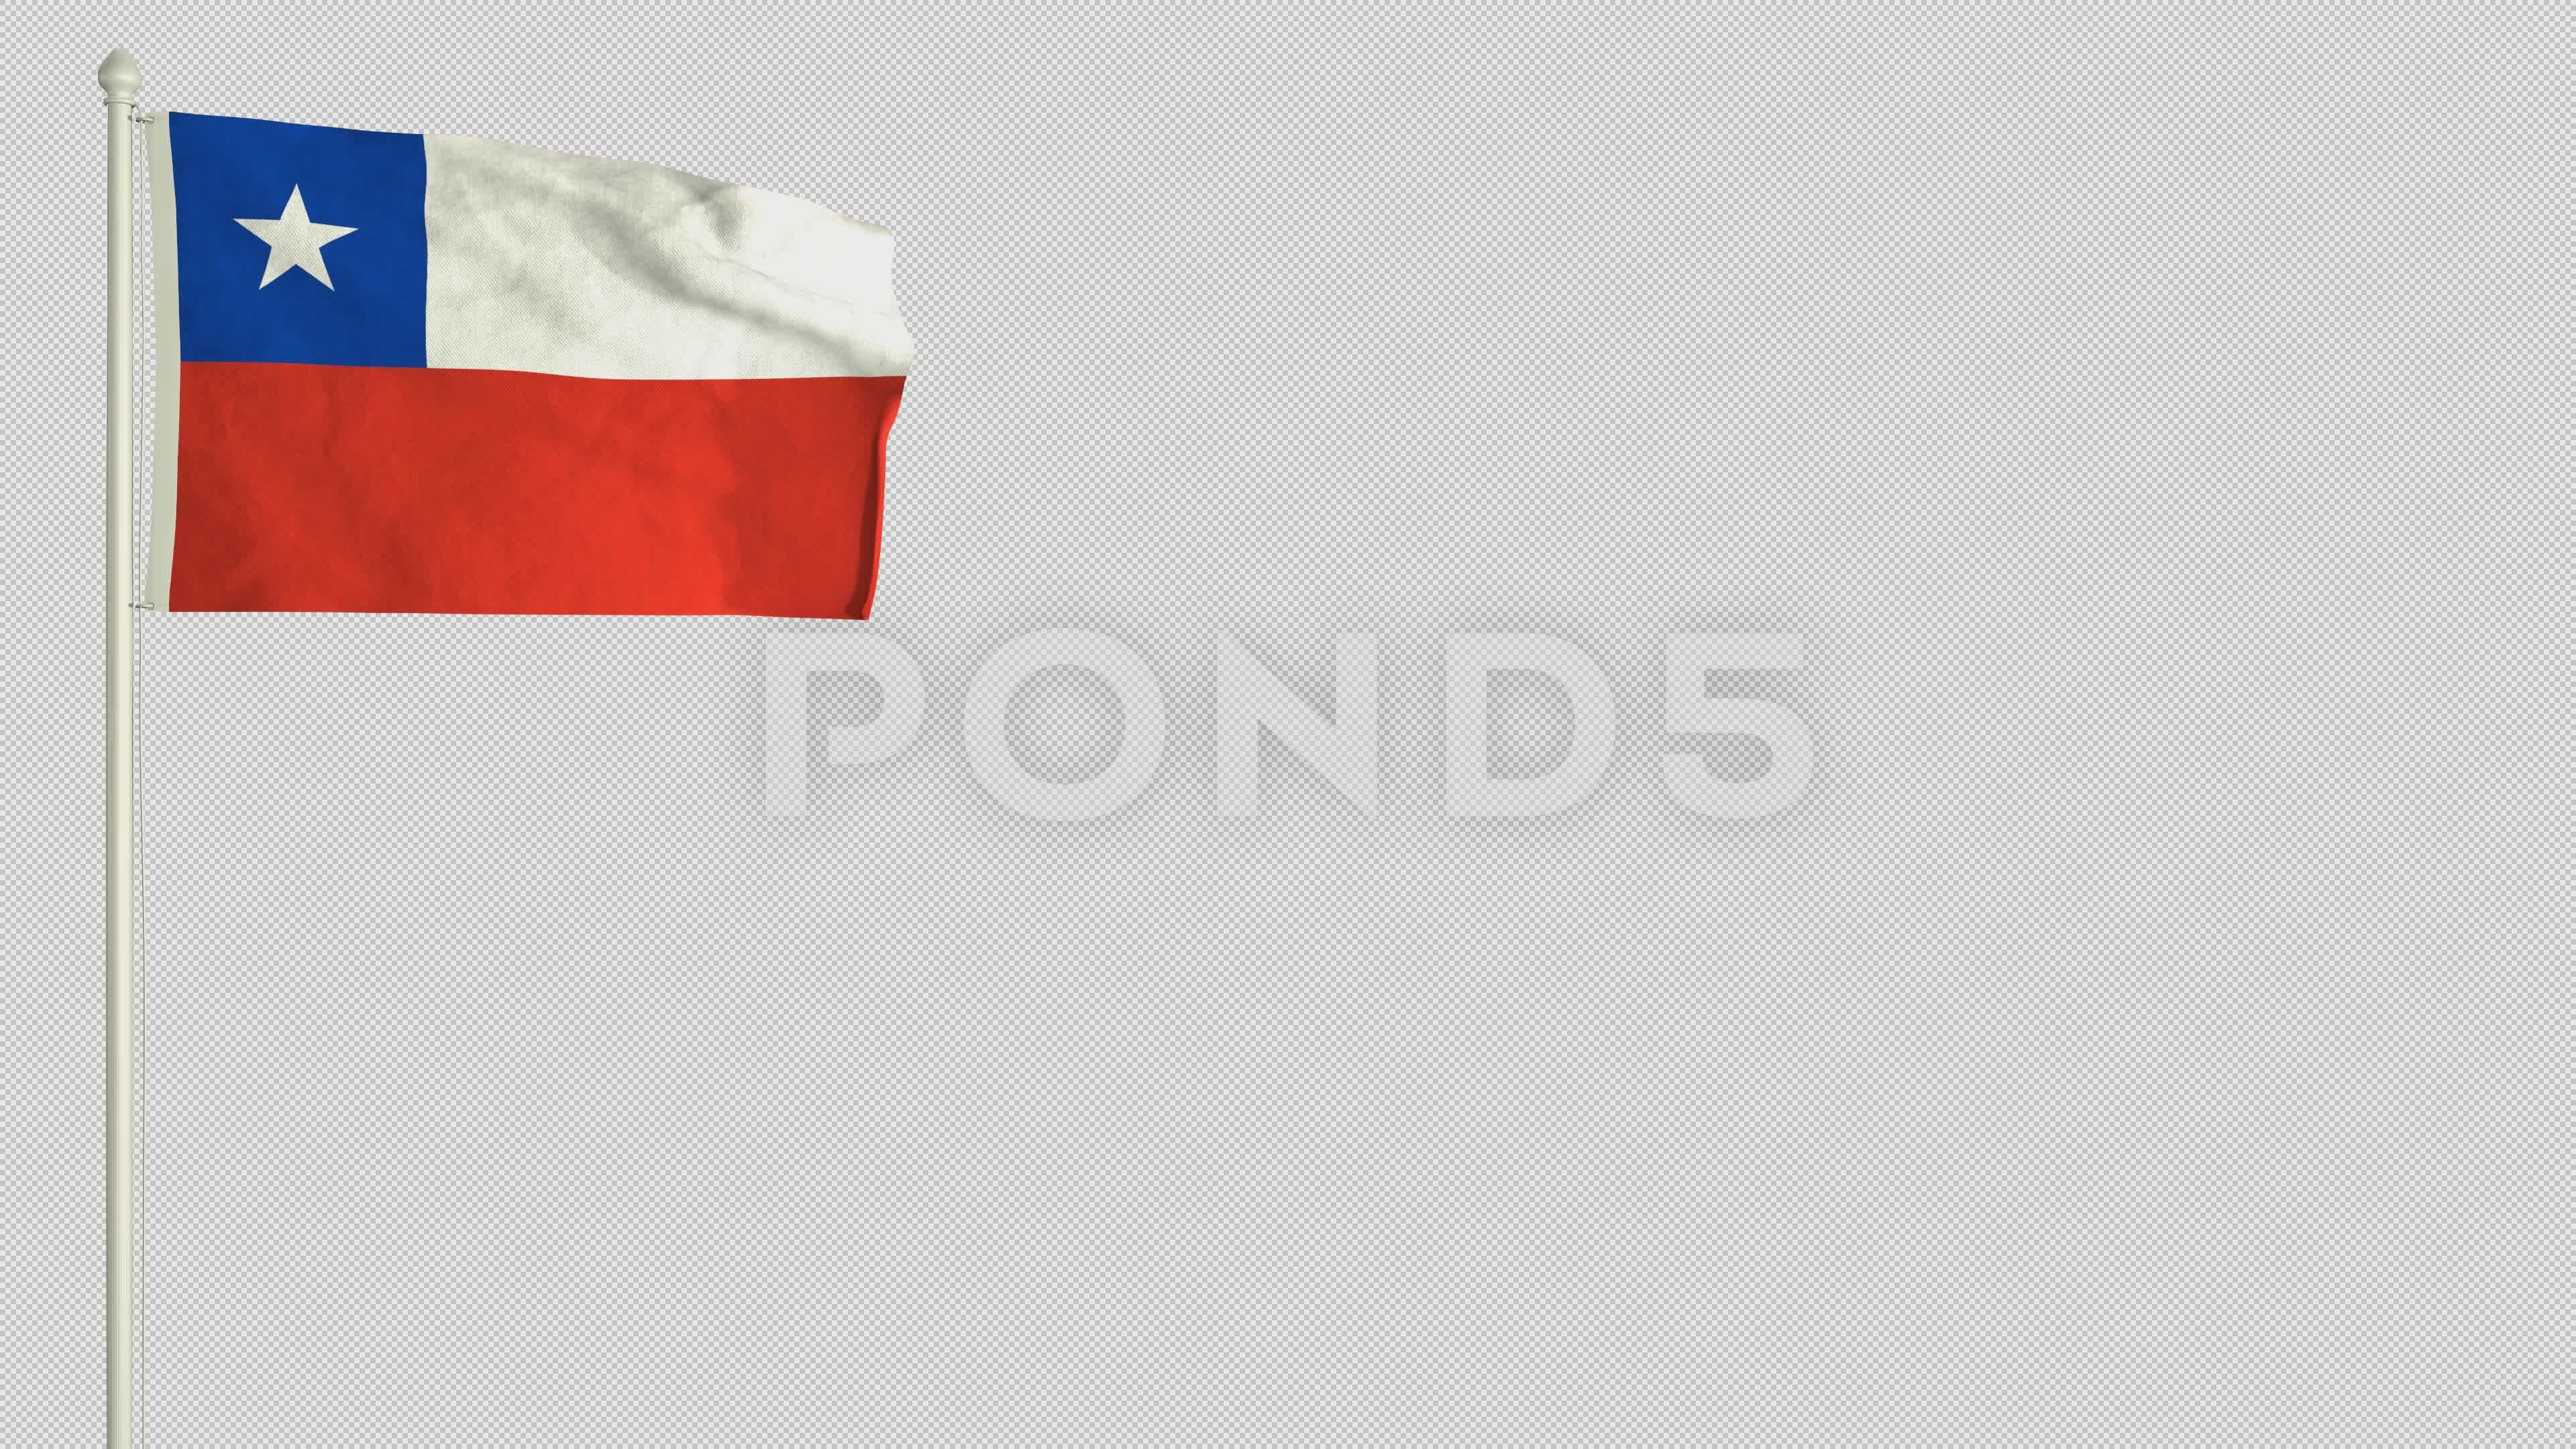 Chilean Flag Waving In The Wind With Png Alpha Channel Stock Footage Waving Wind Chilean Flag Chilean Flag Flag Alpha Channel